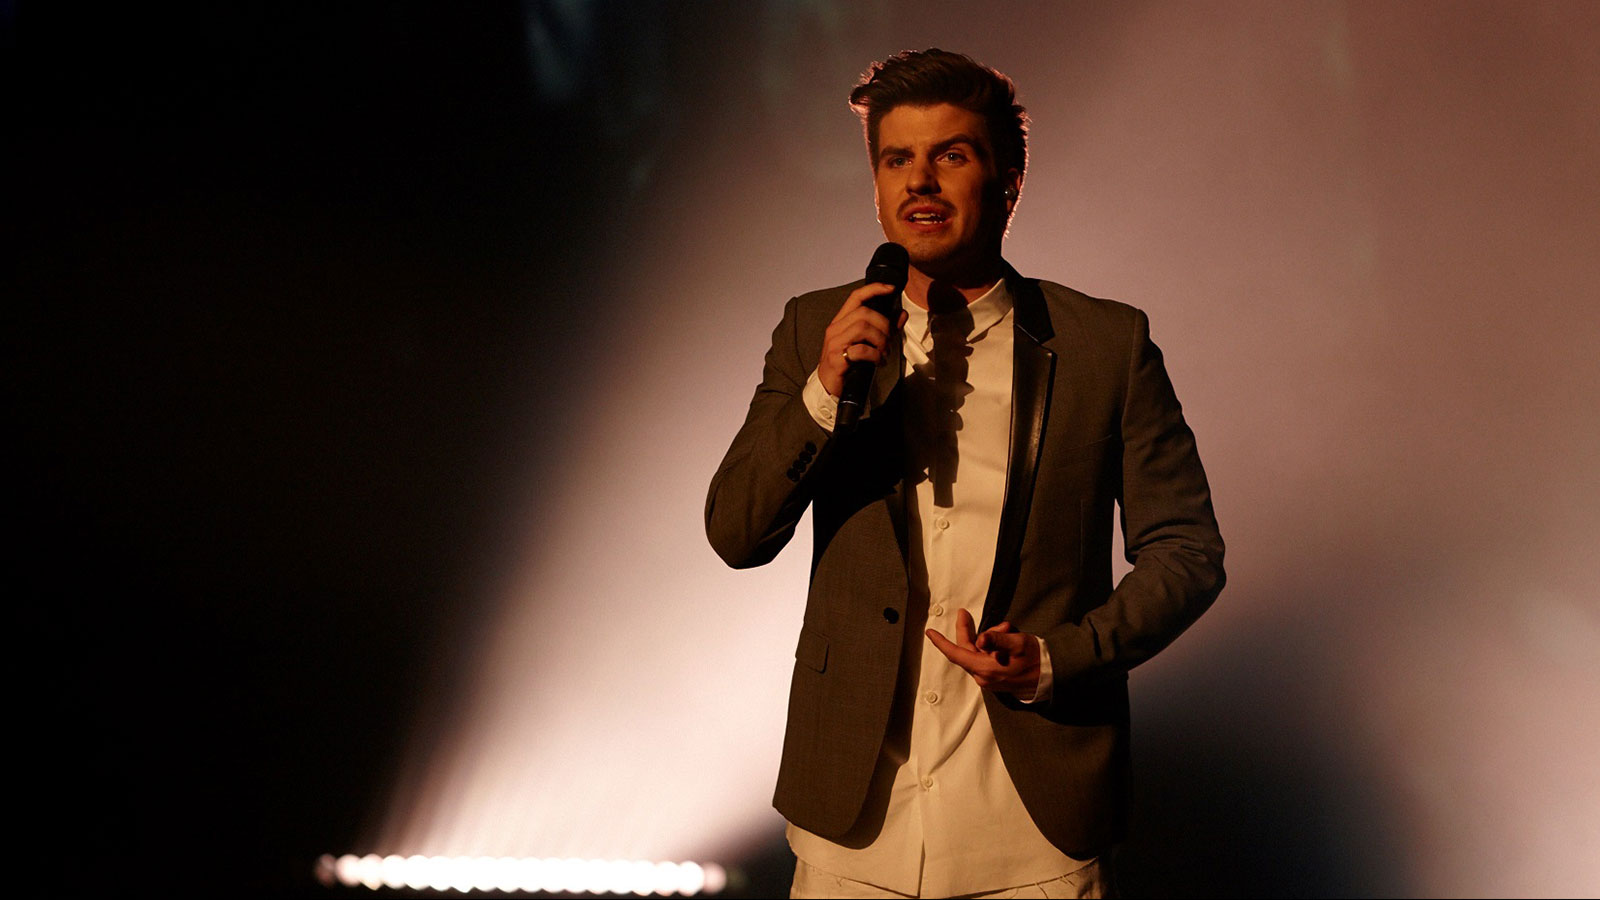 X Factor Australia Matt Price